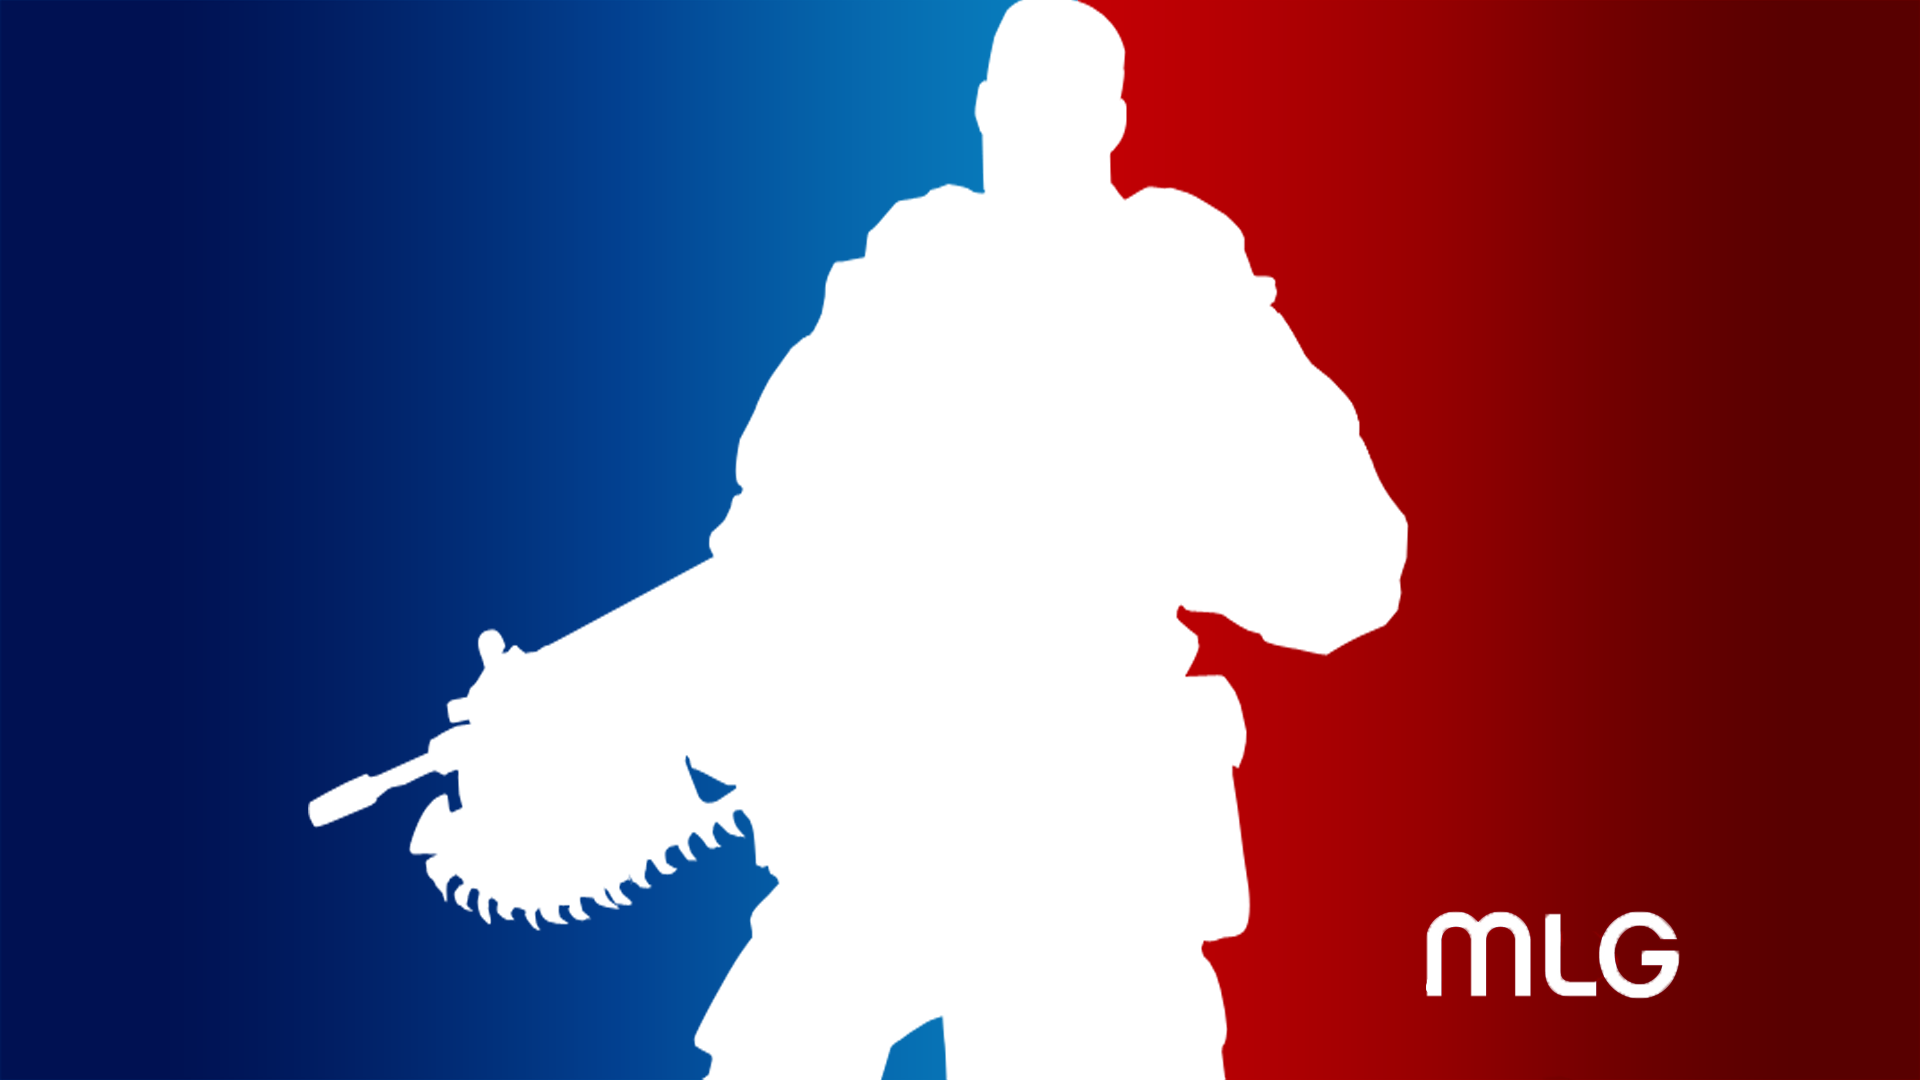 Gears Of War Mlg Desktop Wallpaper Ipod Wallpaper Gears Of War 3 Gaming Wallpapers